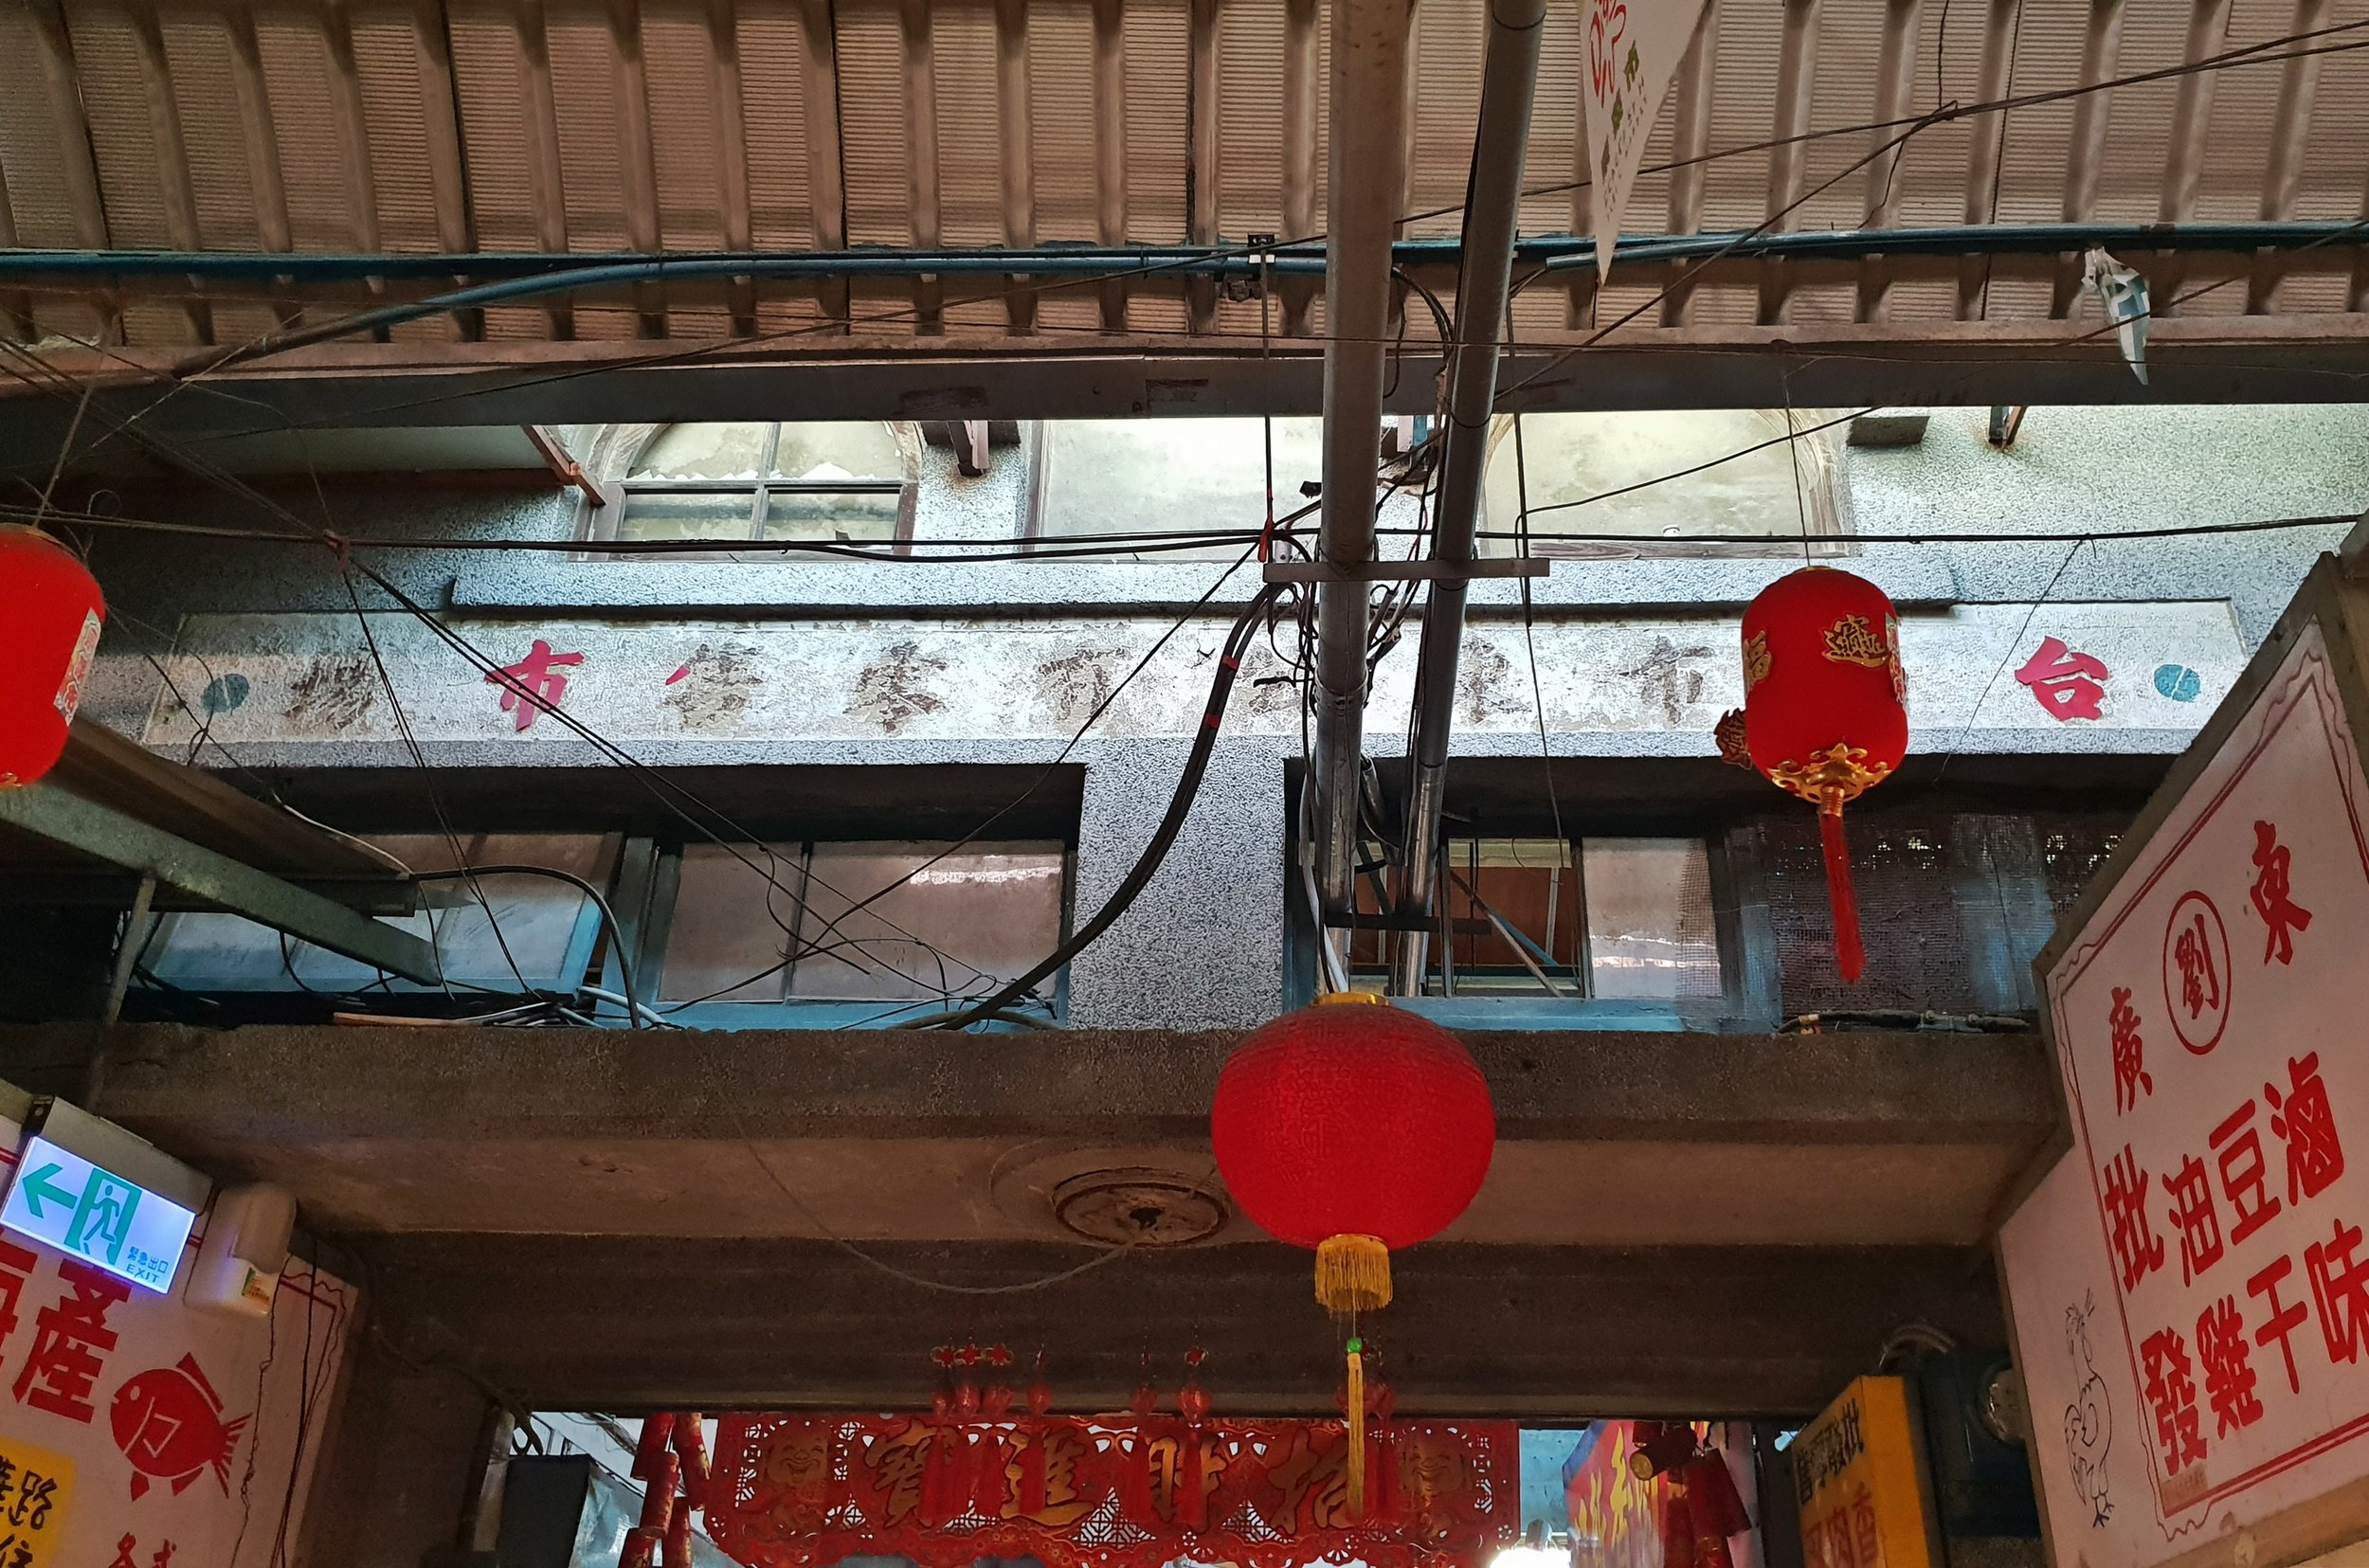 It's hard to see much of the old Dongmen Market behind the metal and signs